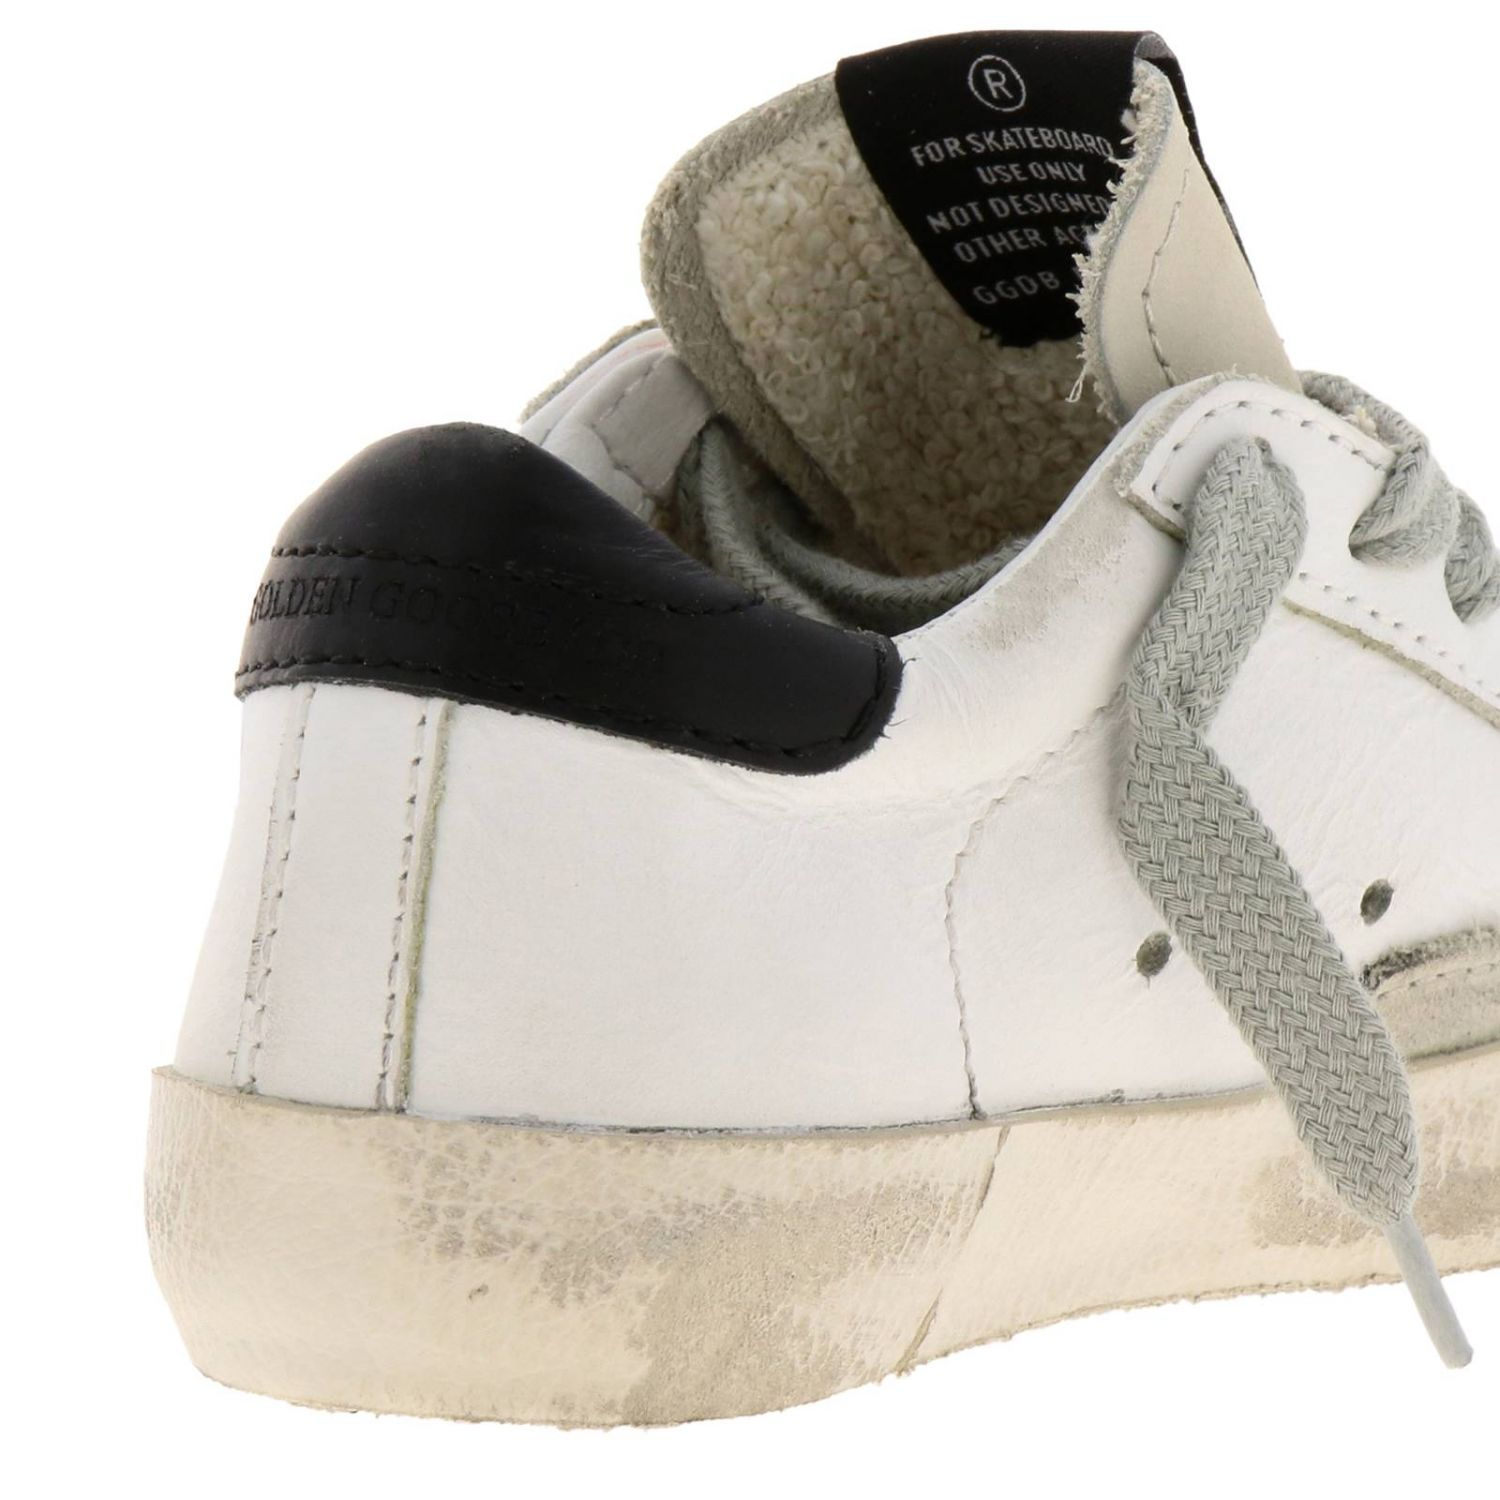 Sneakers Superstar Golden Goose in pelle a righe con stella stampata bianco 4